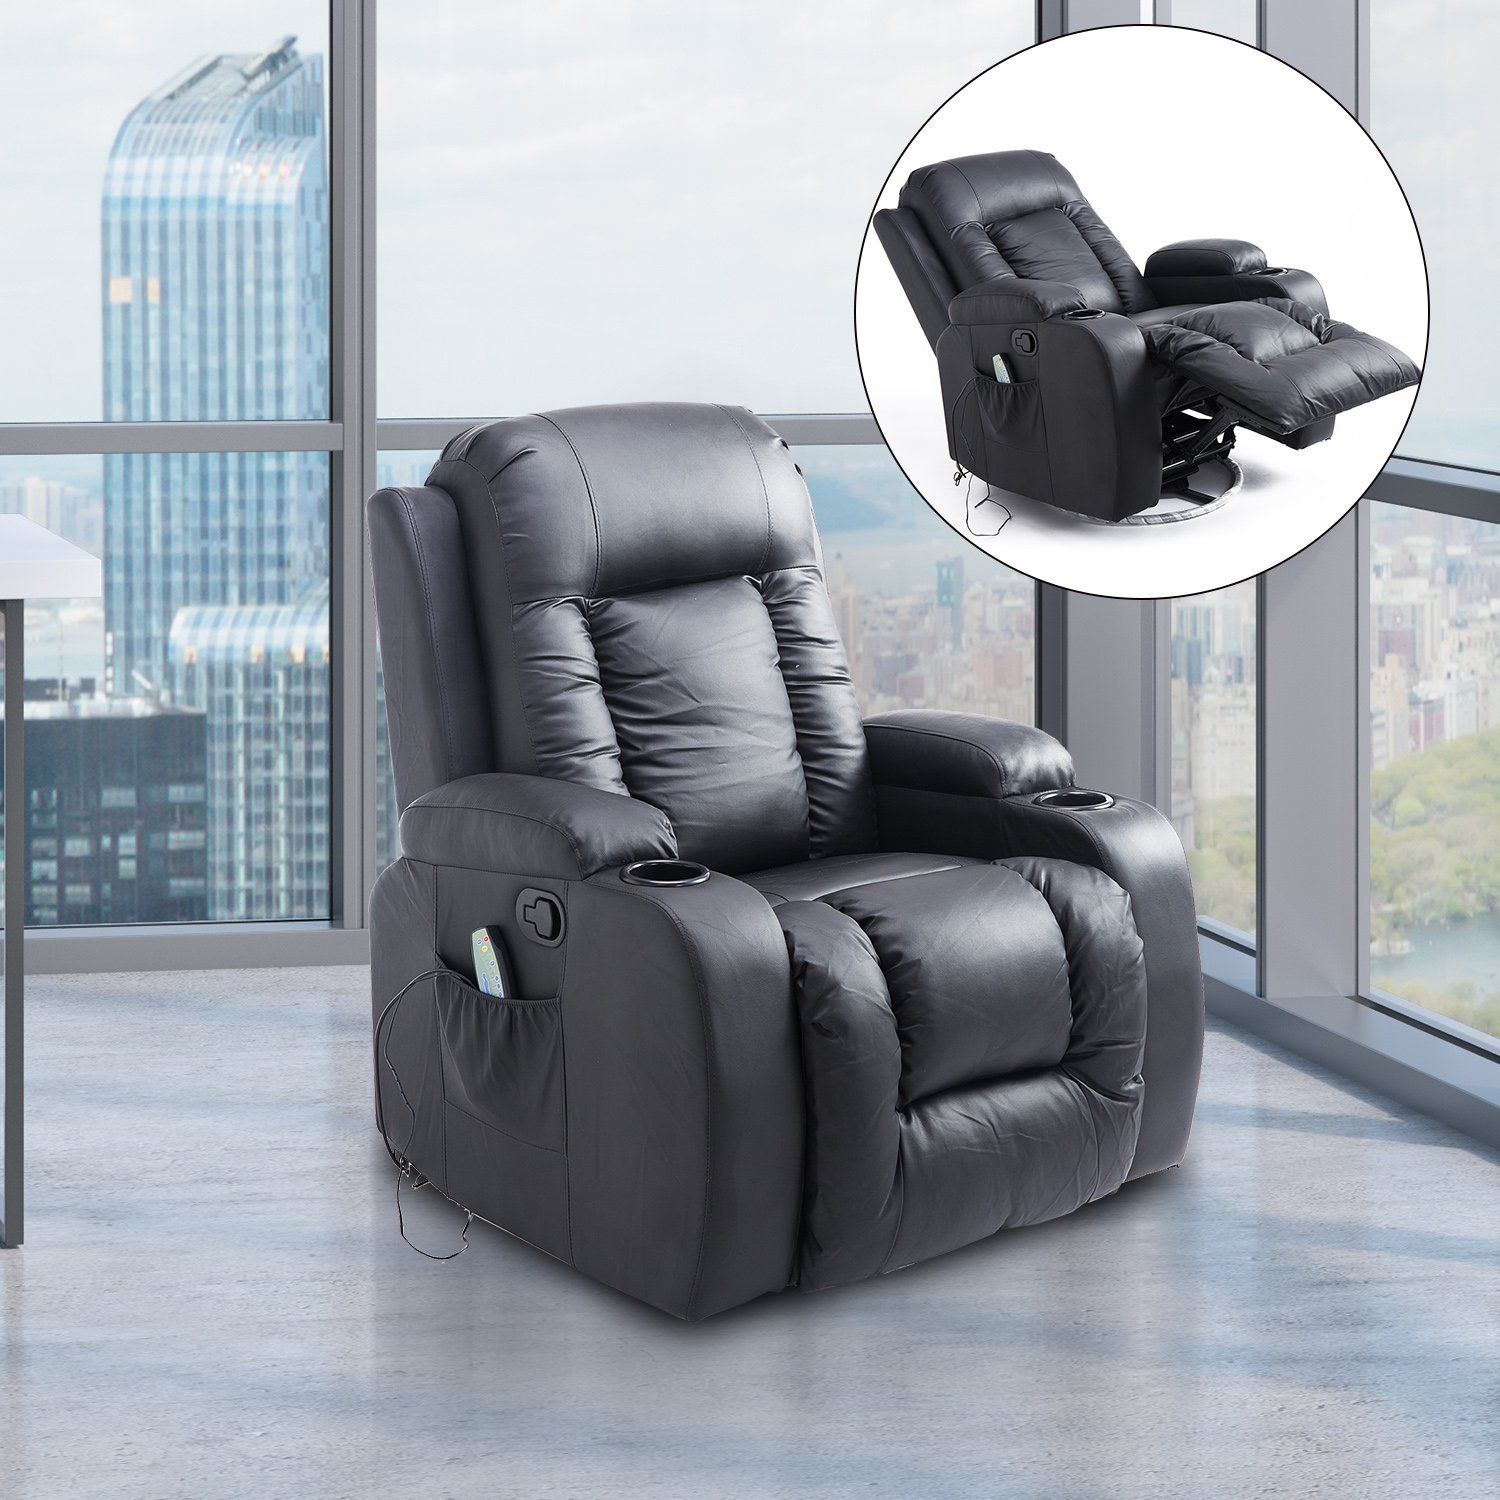 Best Full Body Electric Massage Chair In India 2020 in